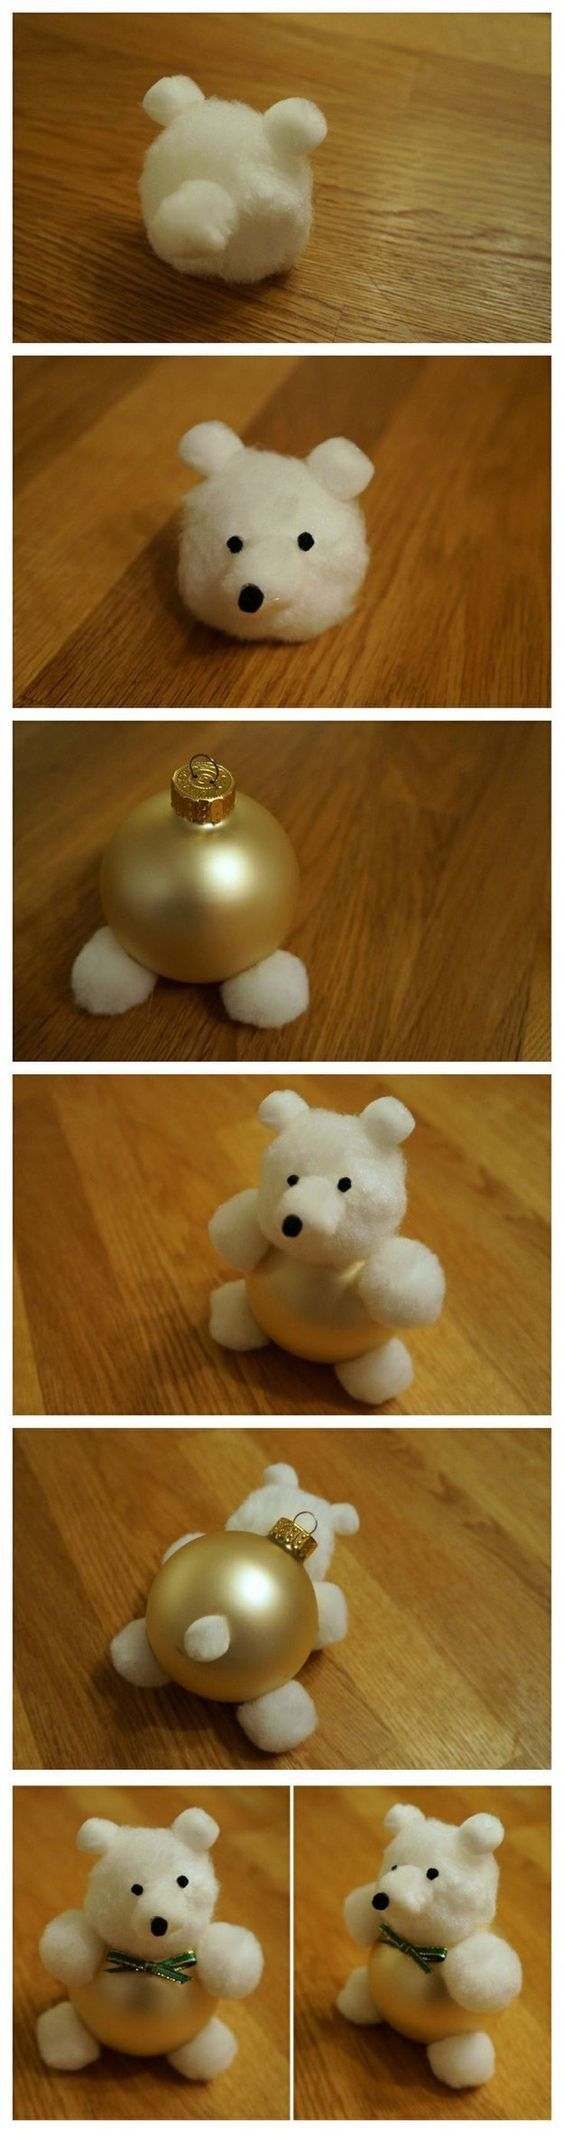 DIY Teddy Bear ornaments for Christmas!